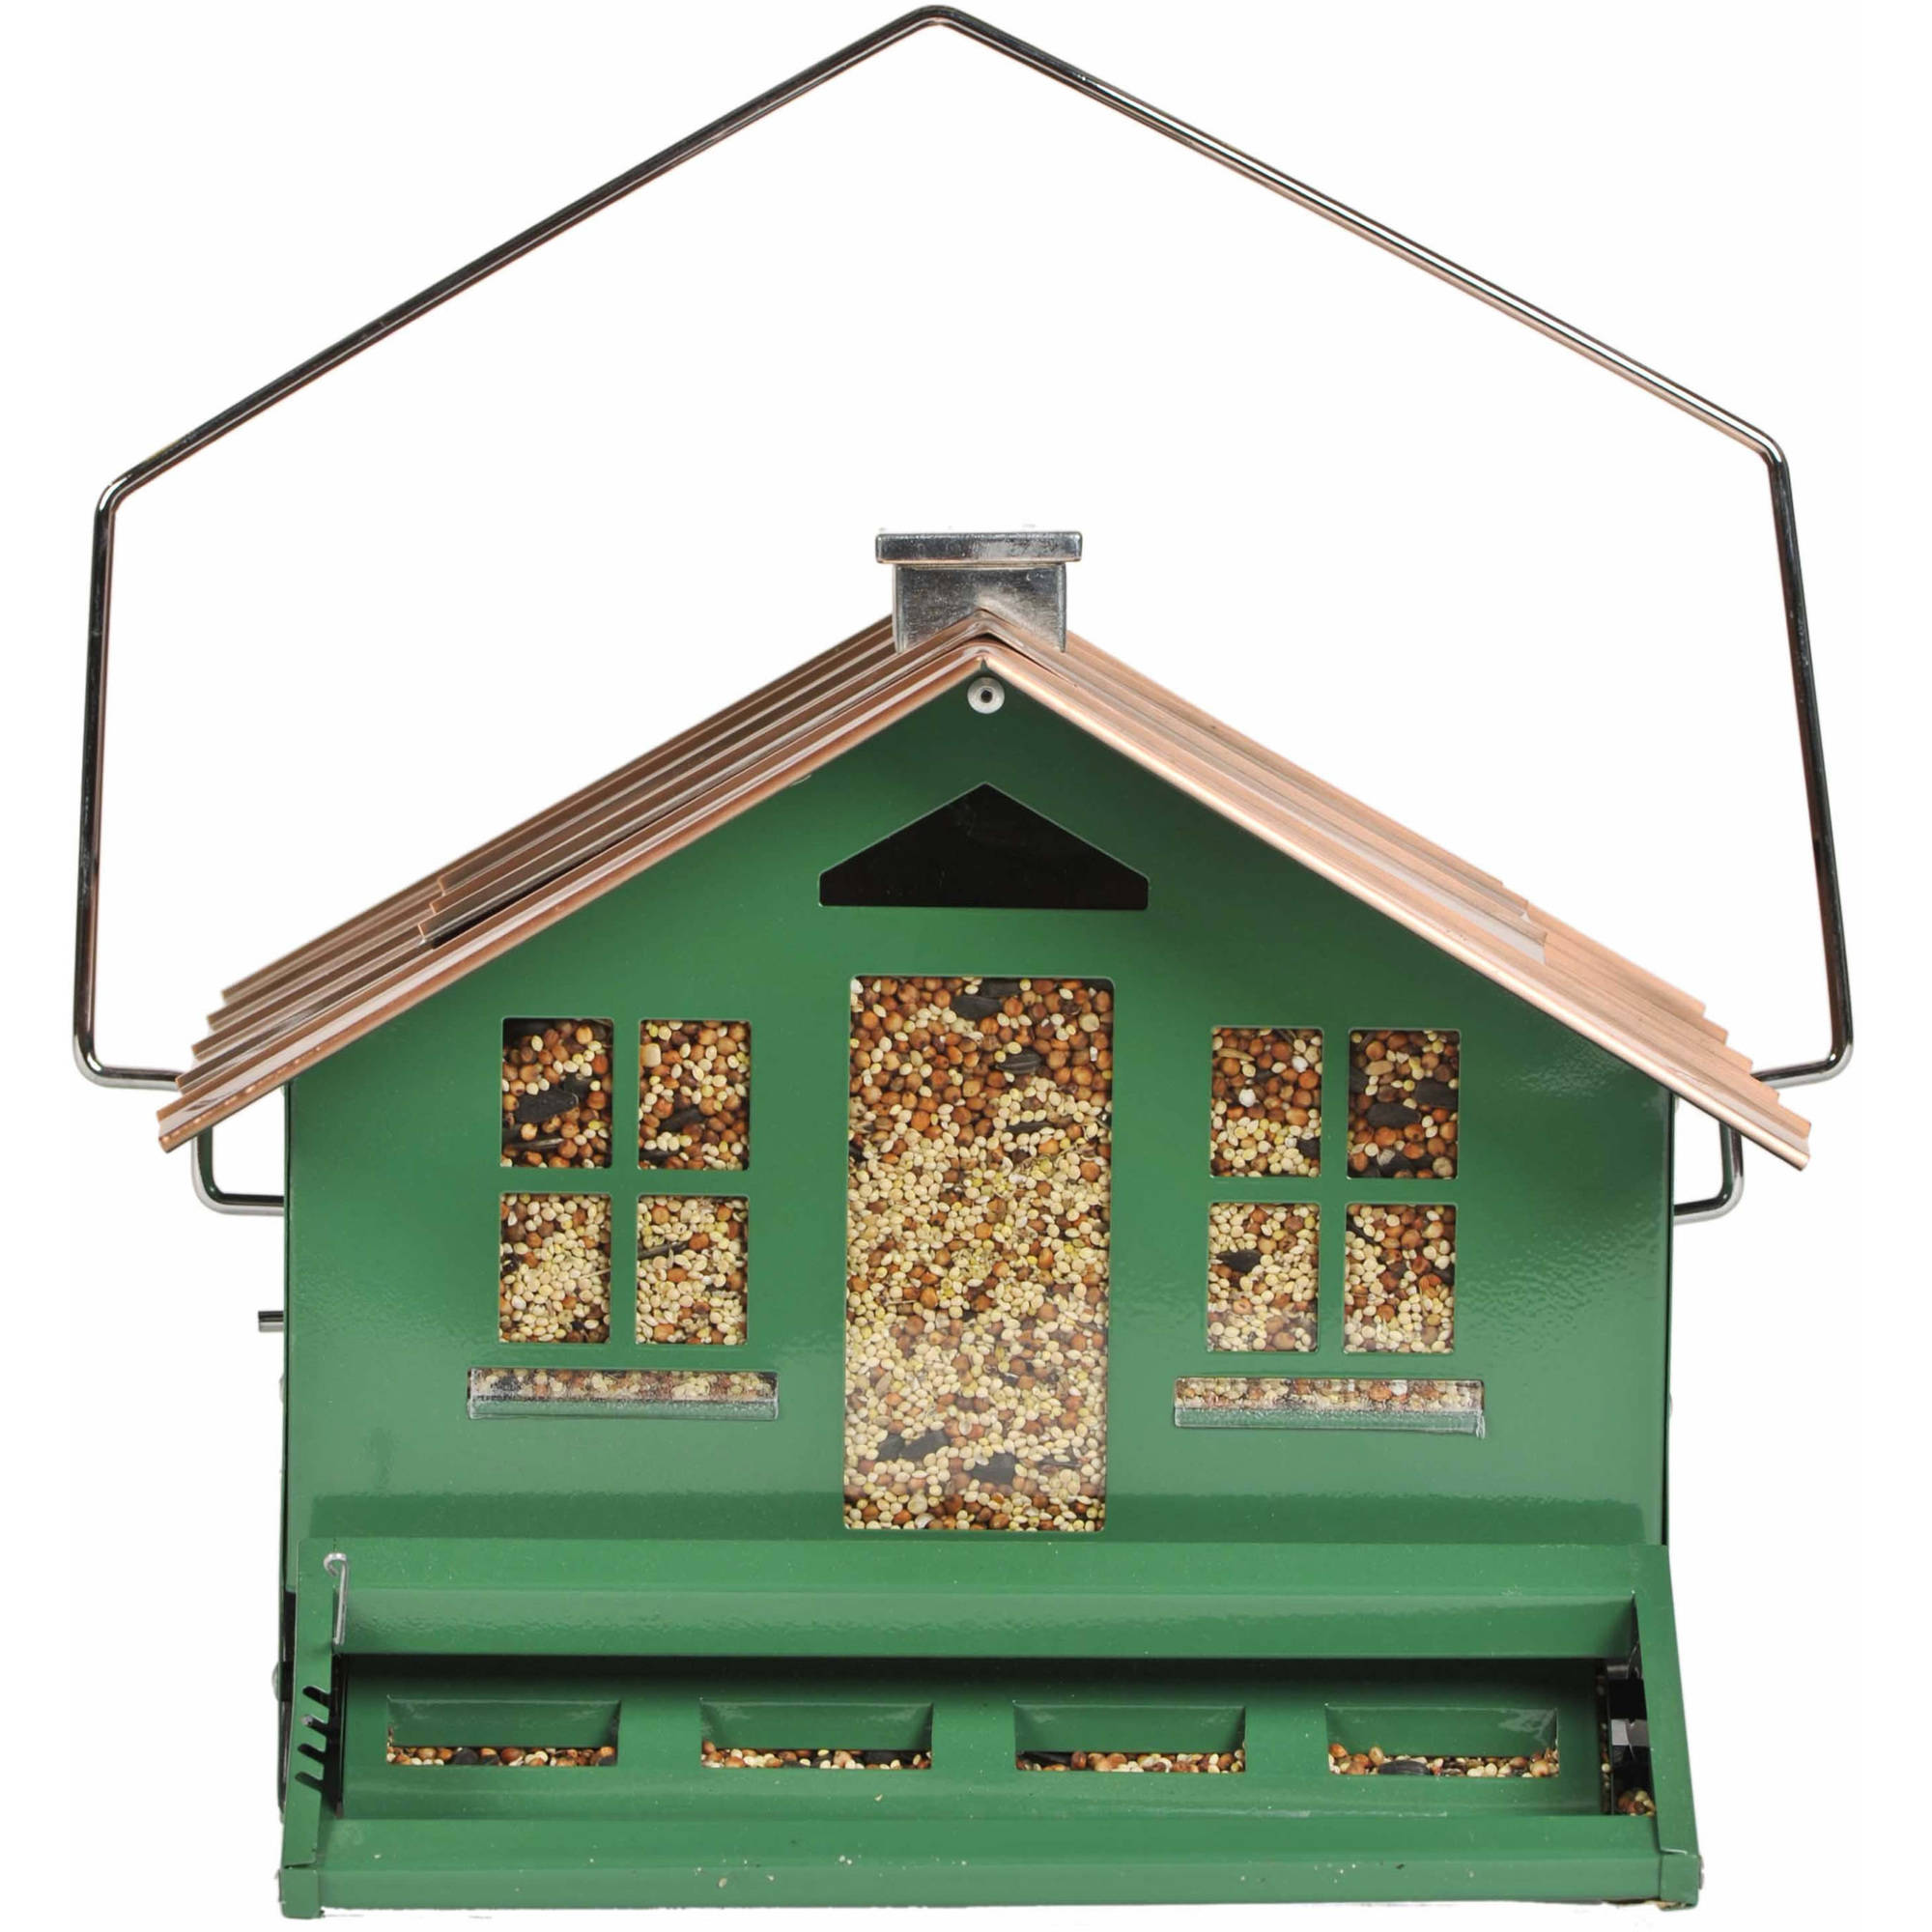 Perky-Pet Squirrel-Be-Gone II Home Style Wild Bird Feeder